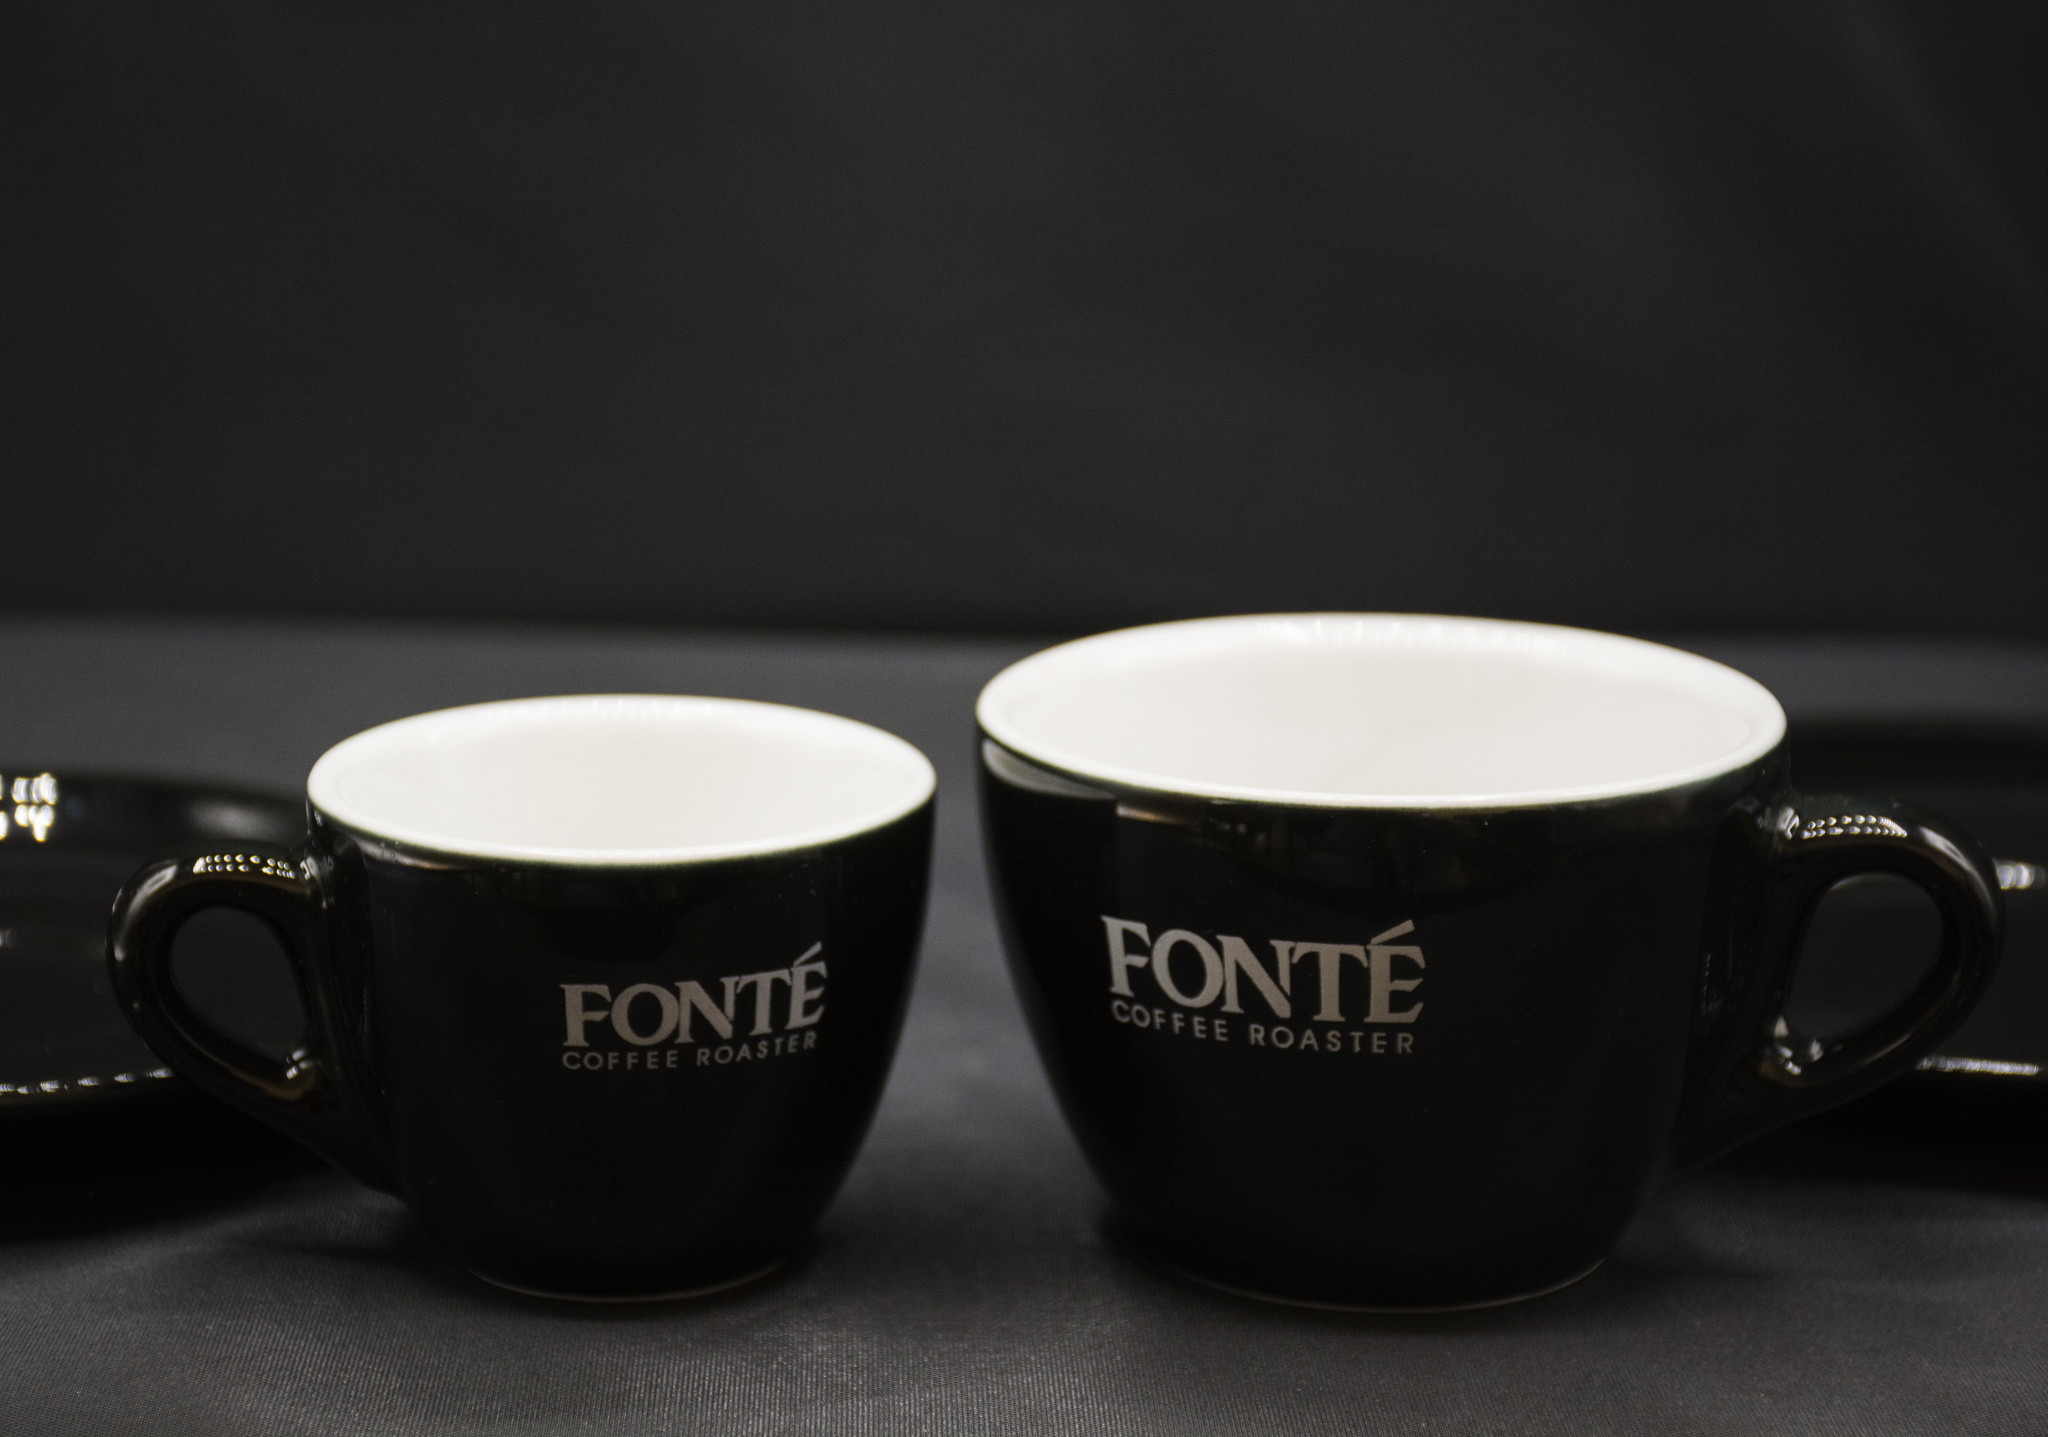 Fonte Coffee Roaster 3 oz and 6 oz Ceramic Coffee Cups